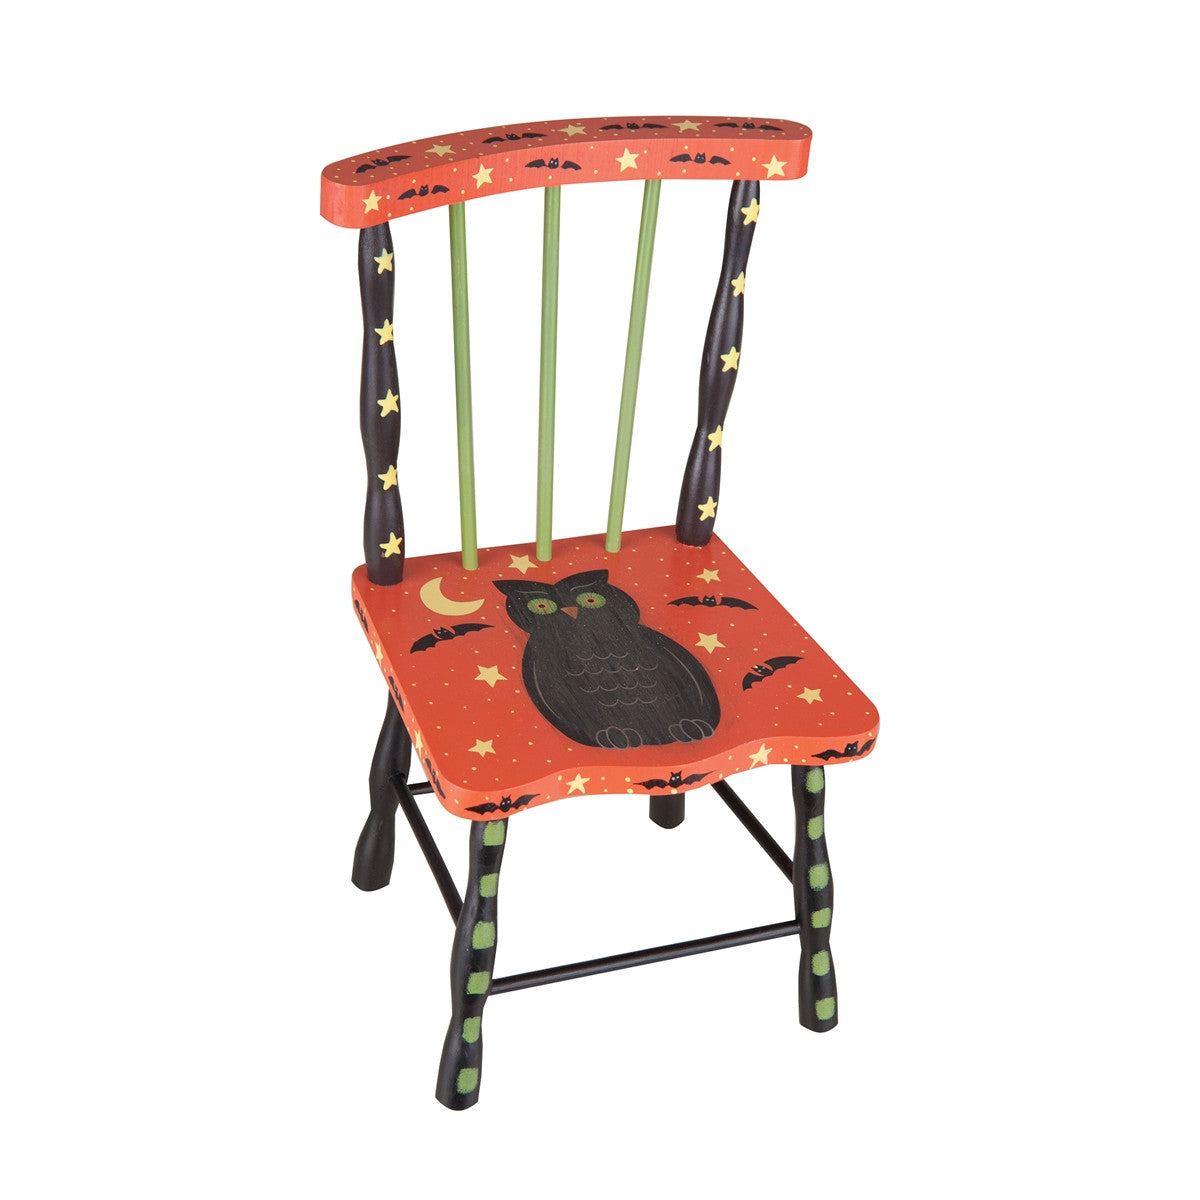 Halloween Doll Chair with owl, bats, crescent moon and stars